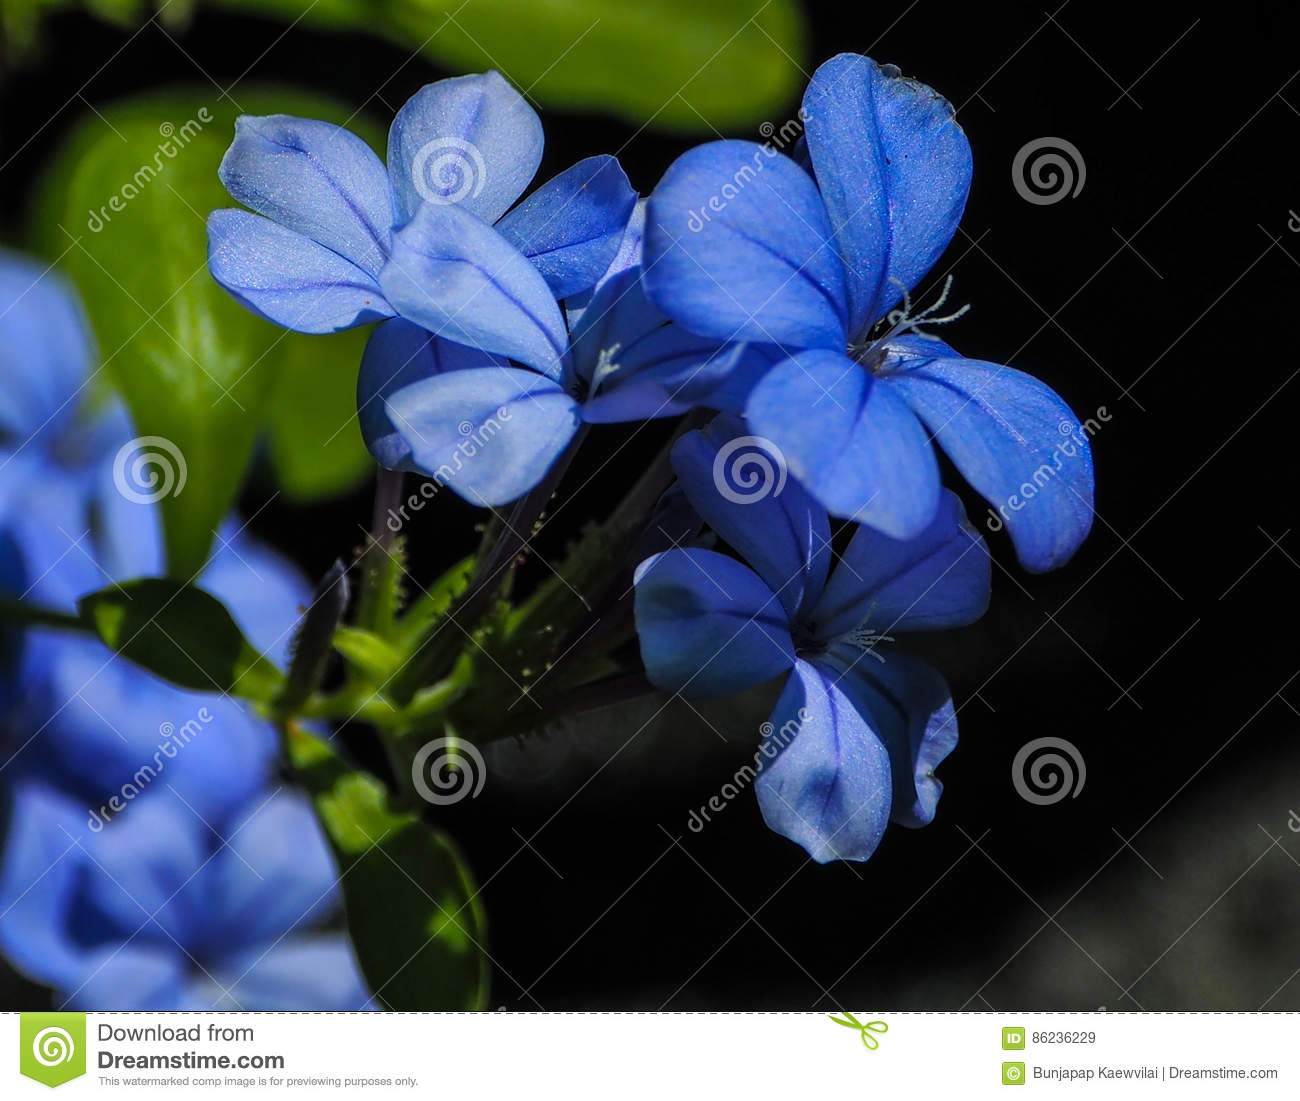 Blue flowers stock image image of natural connection 86236229 blue flowers izmirmasajfo